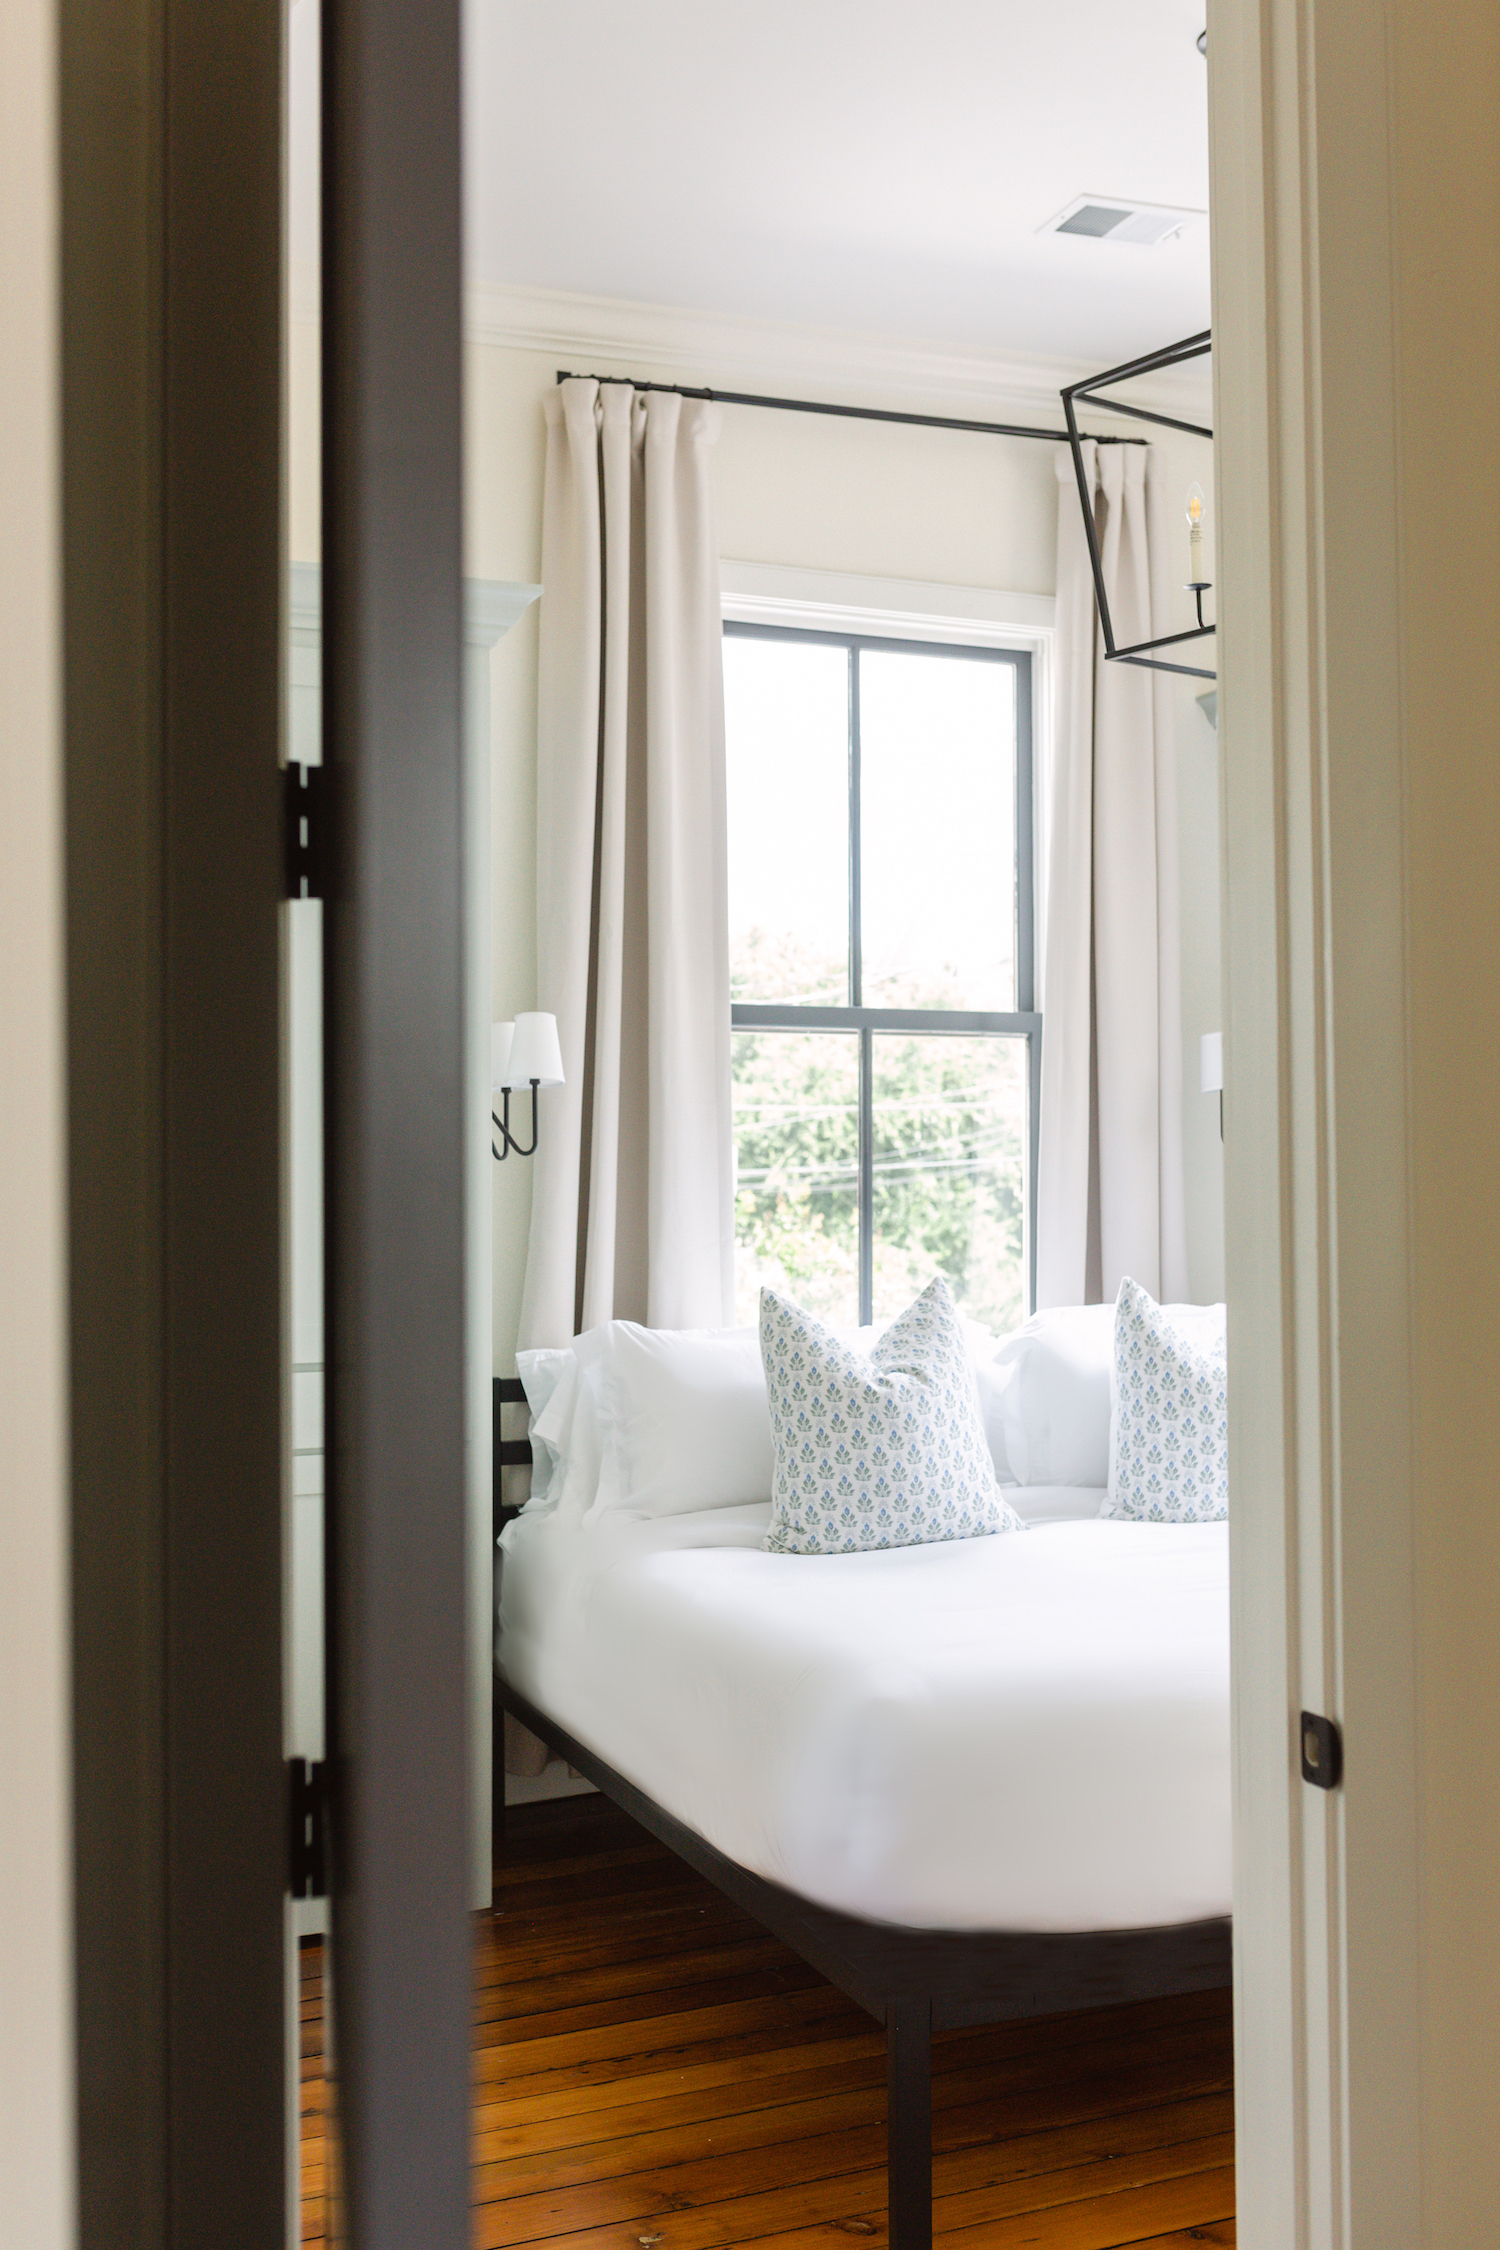 My Stay at Guesthouse Charleston